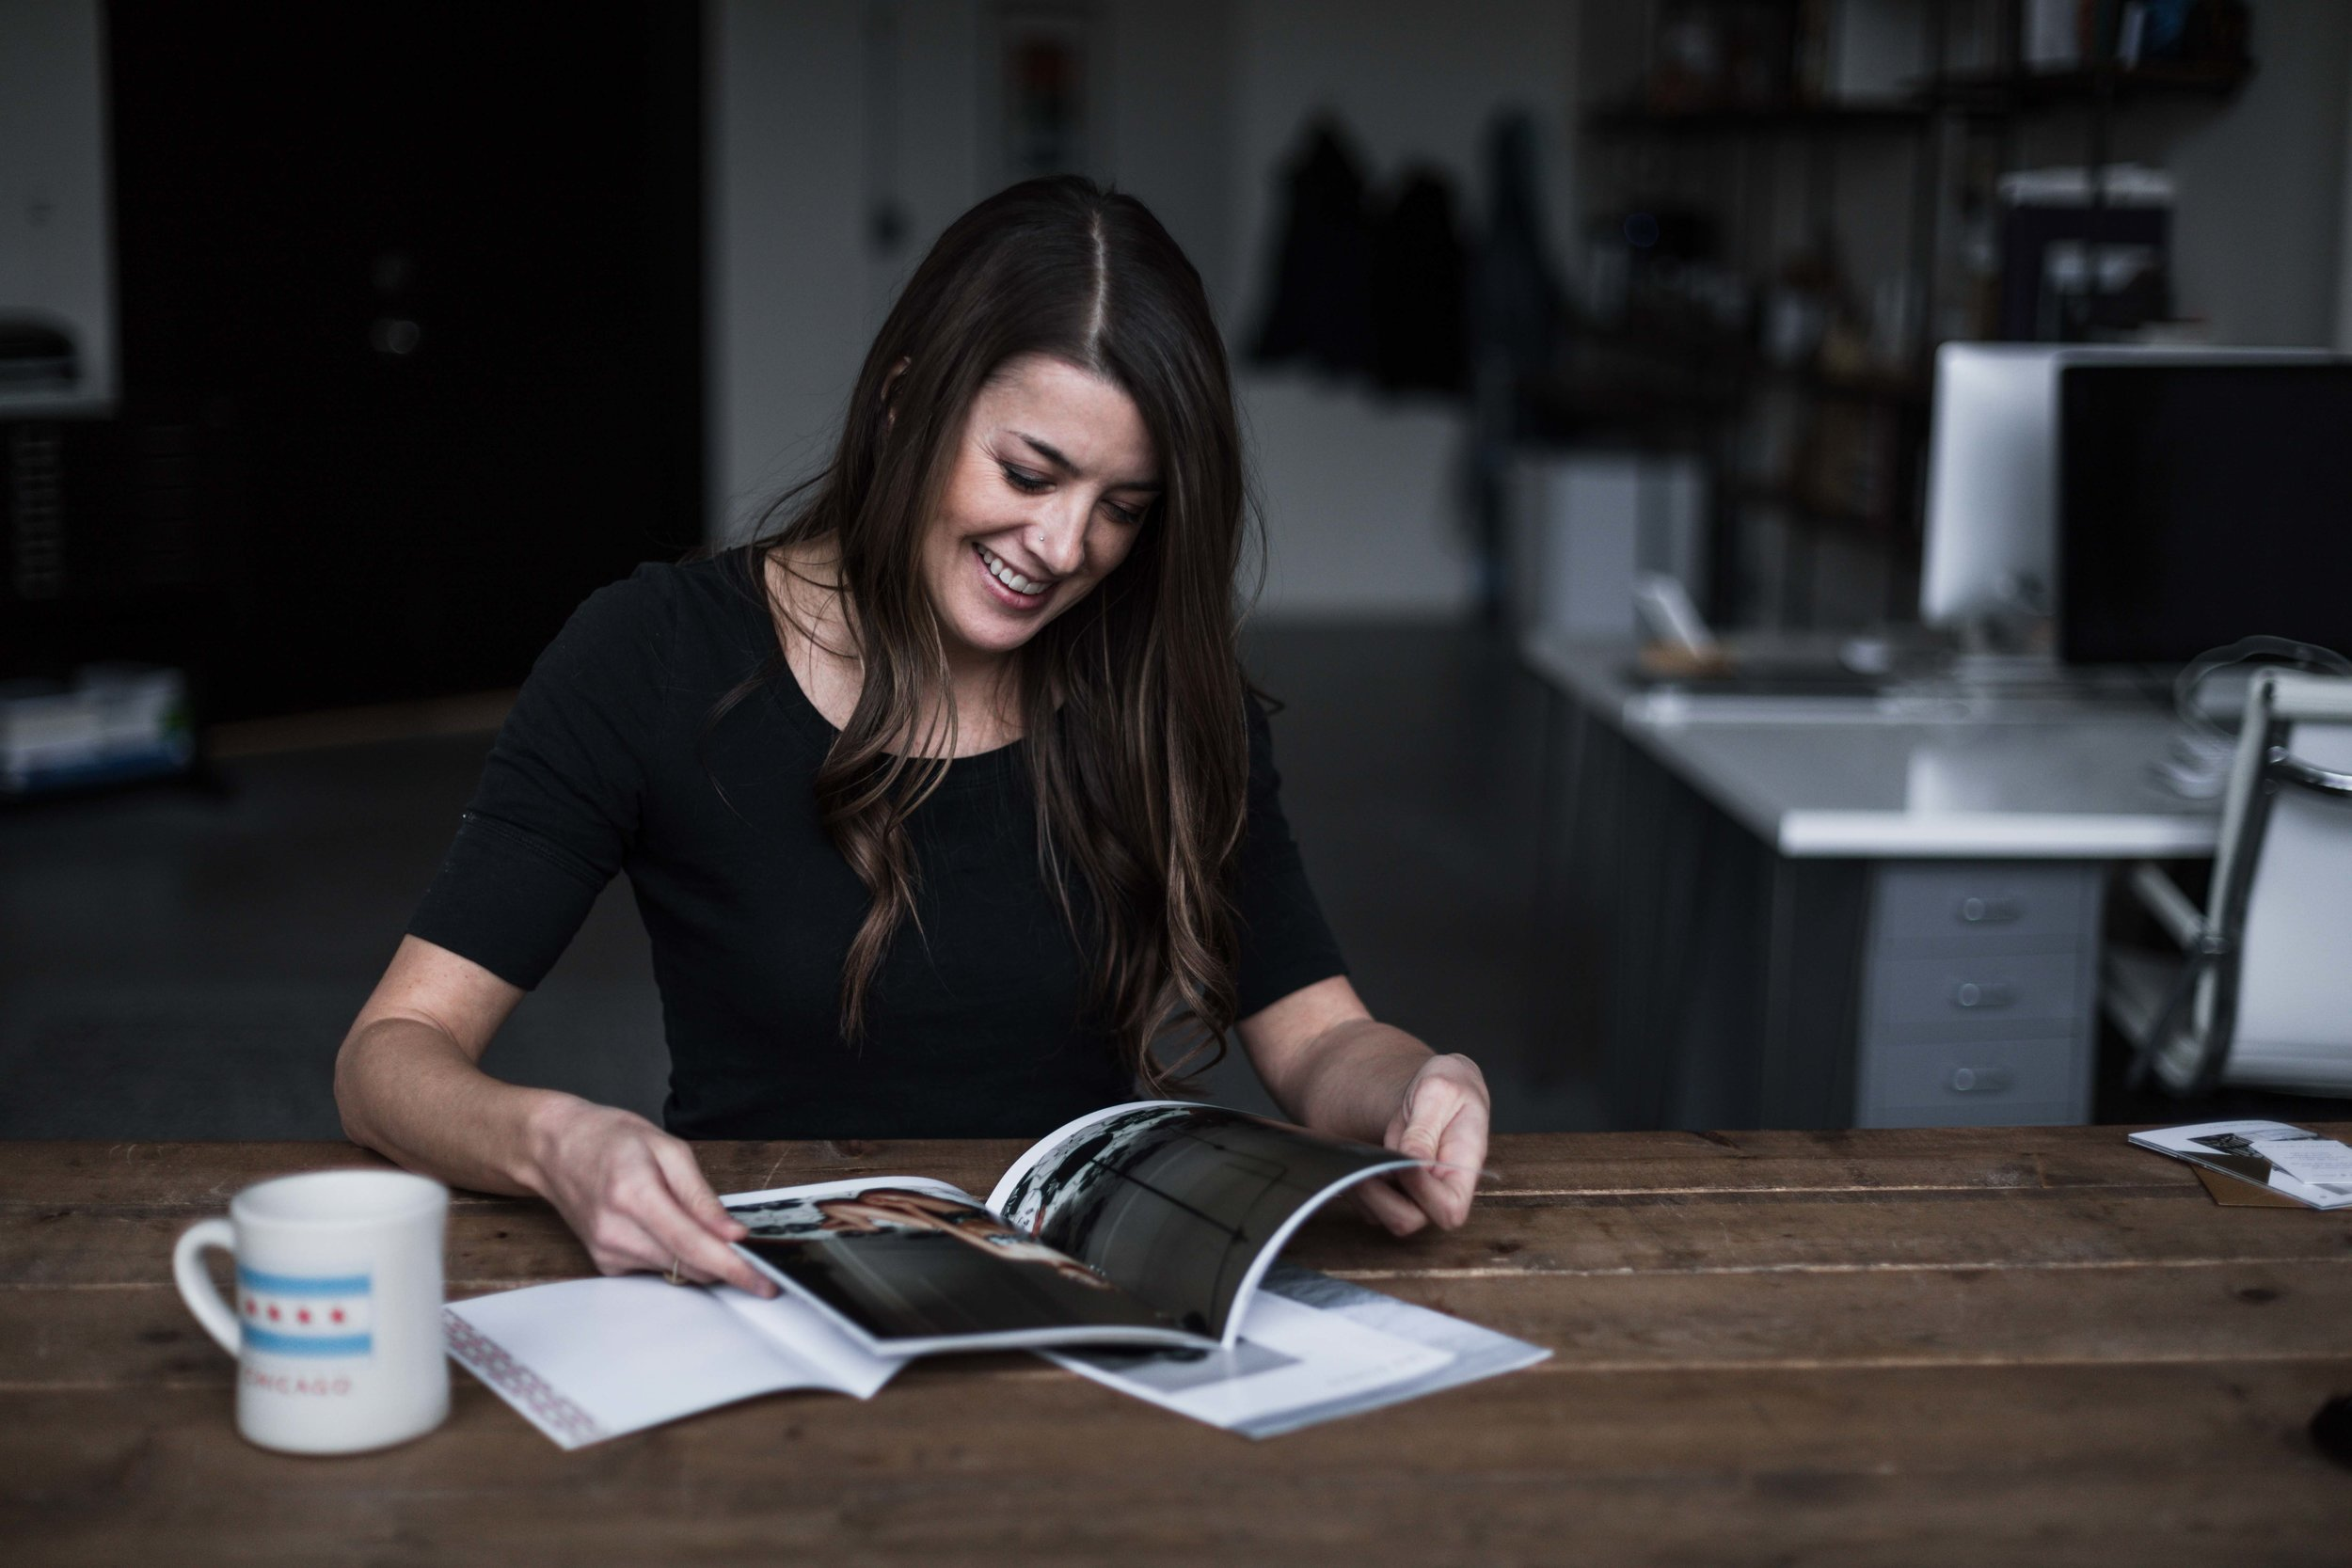 The Inspired Chicago Feature Series - A series of interviews highlighting Chicago's creative entrepreneurial women, sharing their inspirational stories, advice for other boss babes, and tips from their own experience of running successful businesses.